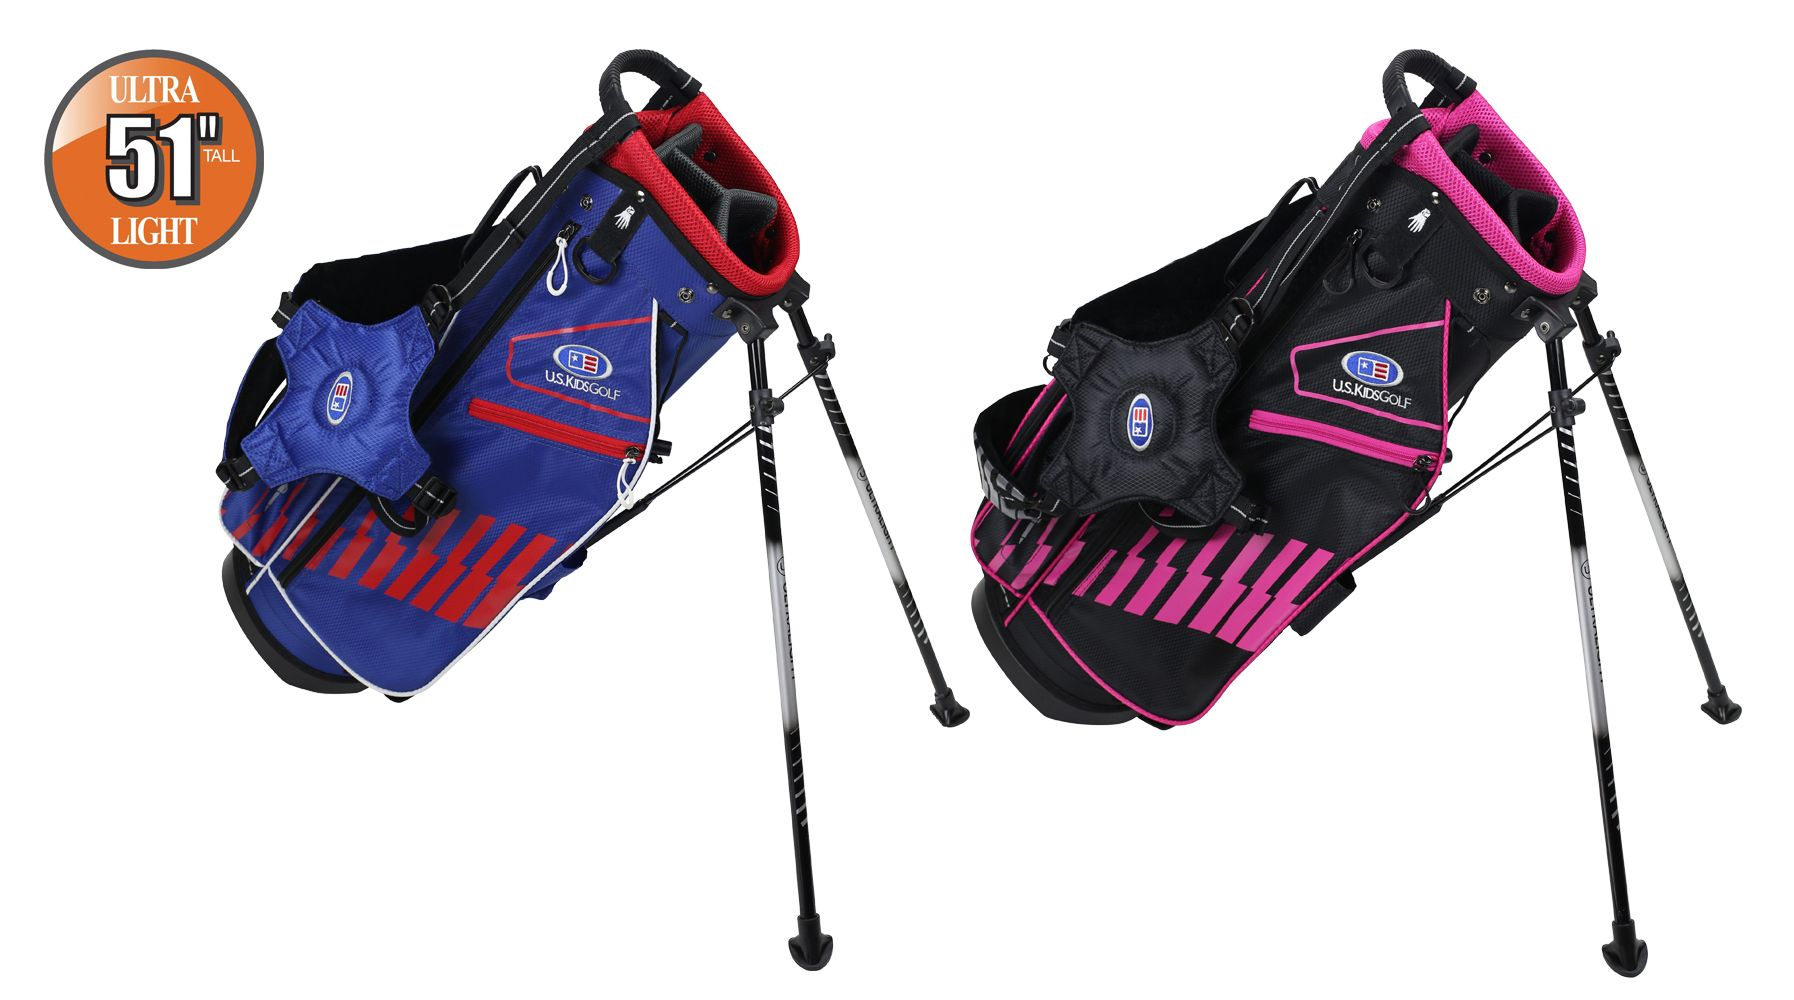 U.S. Kids Golf UL51 Tauschbags